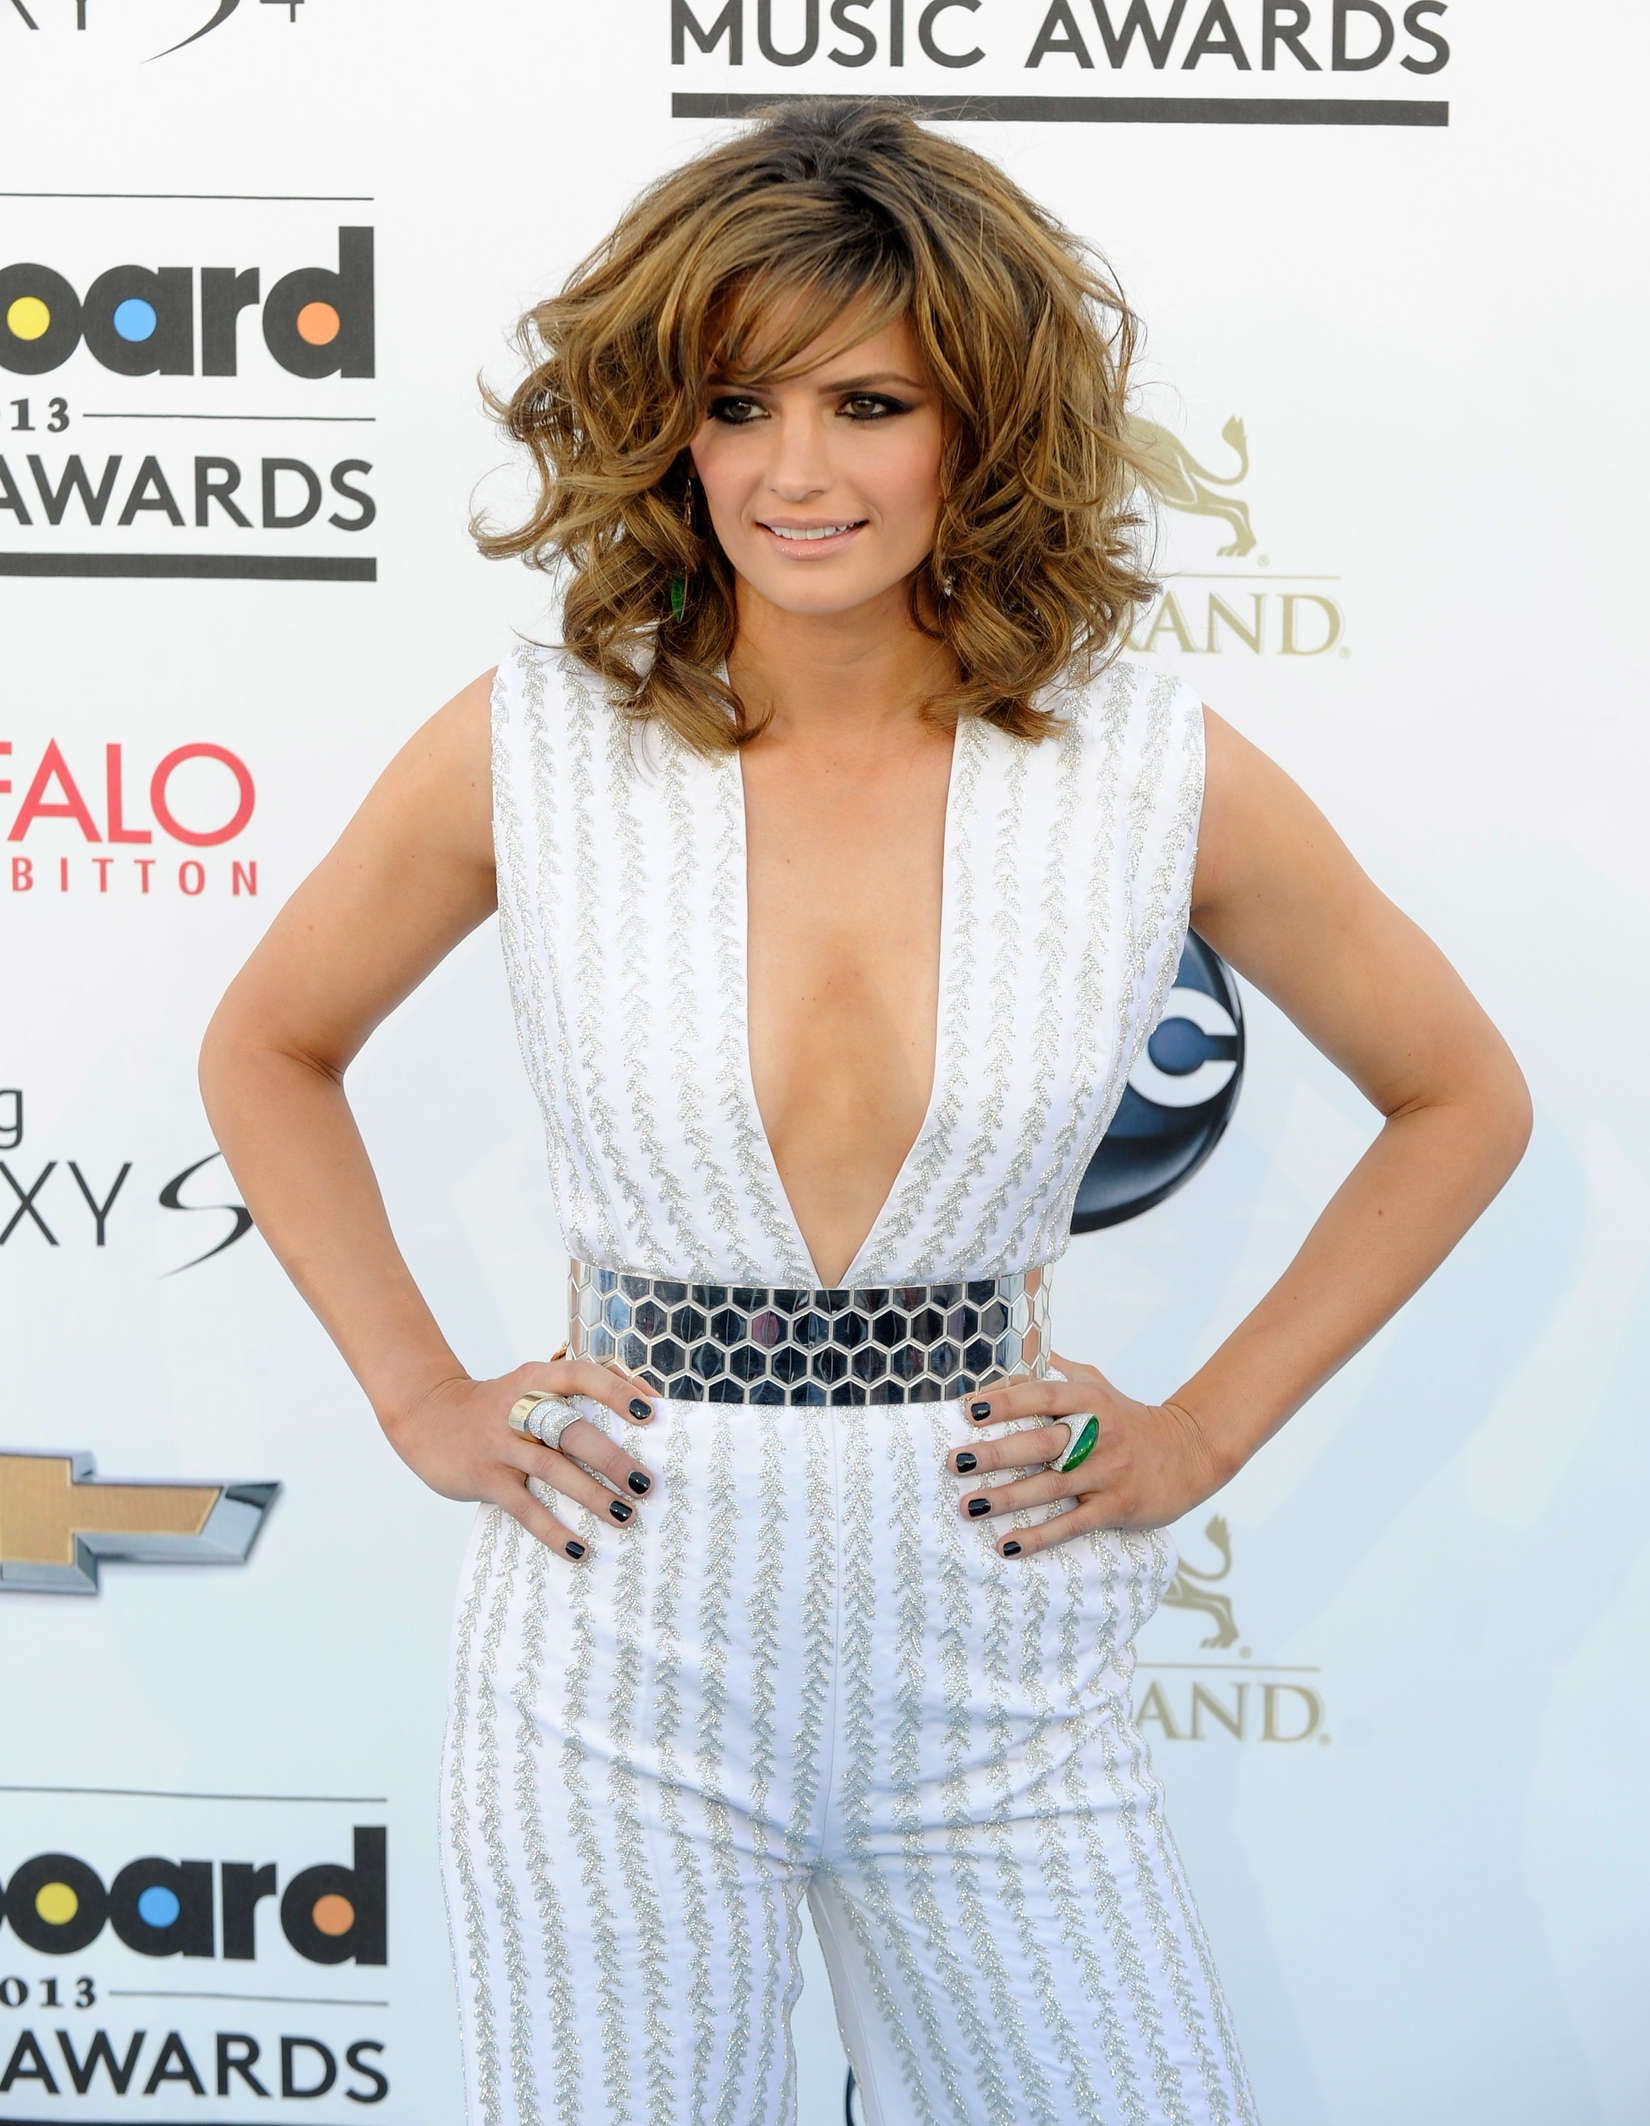 Stana Katic  2013 Billboard Music Awards  Stana Katic -8466